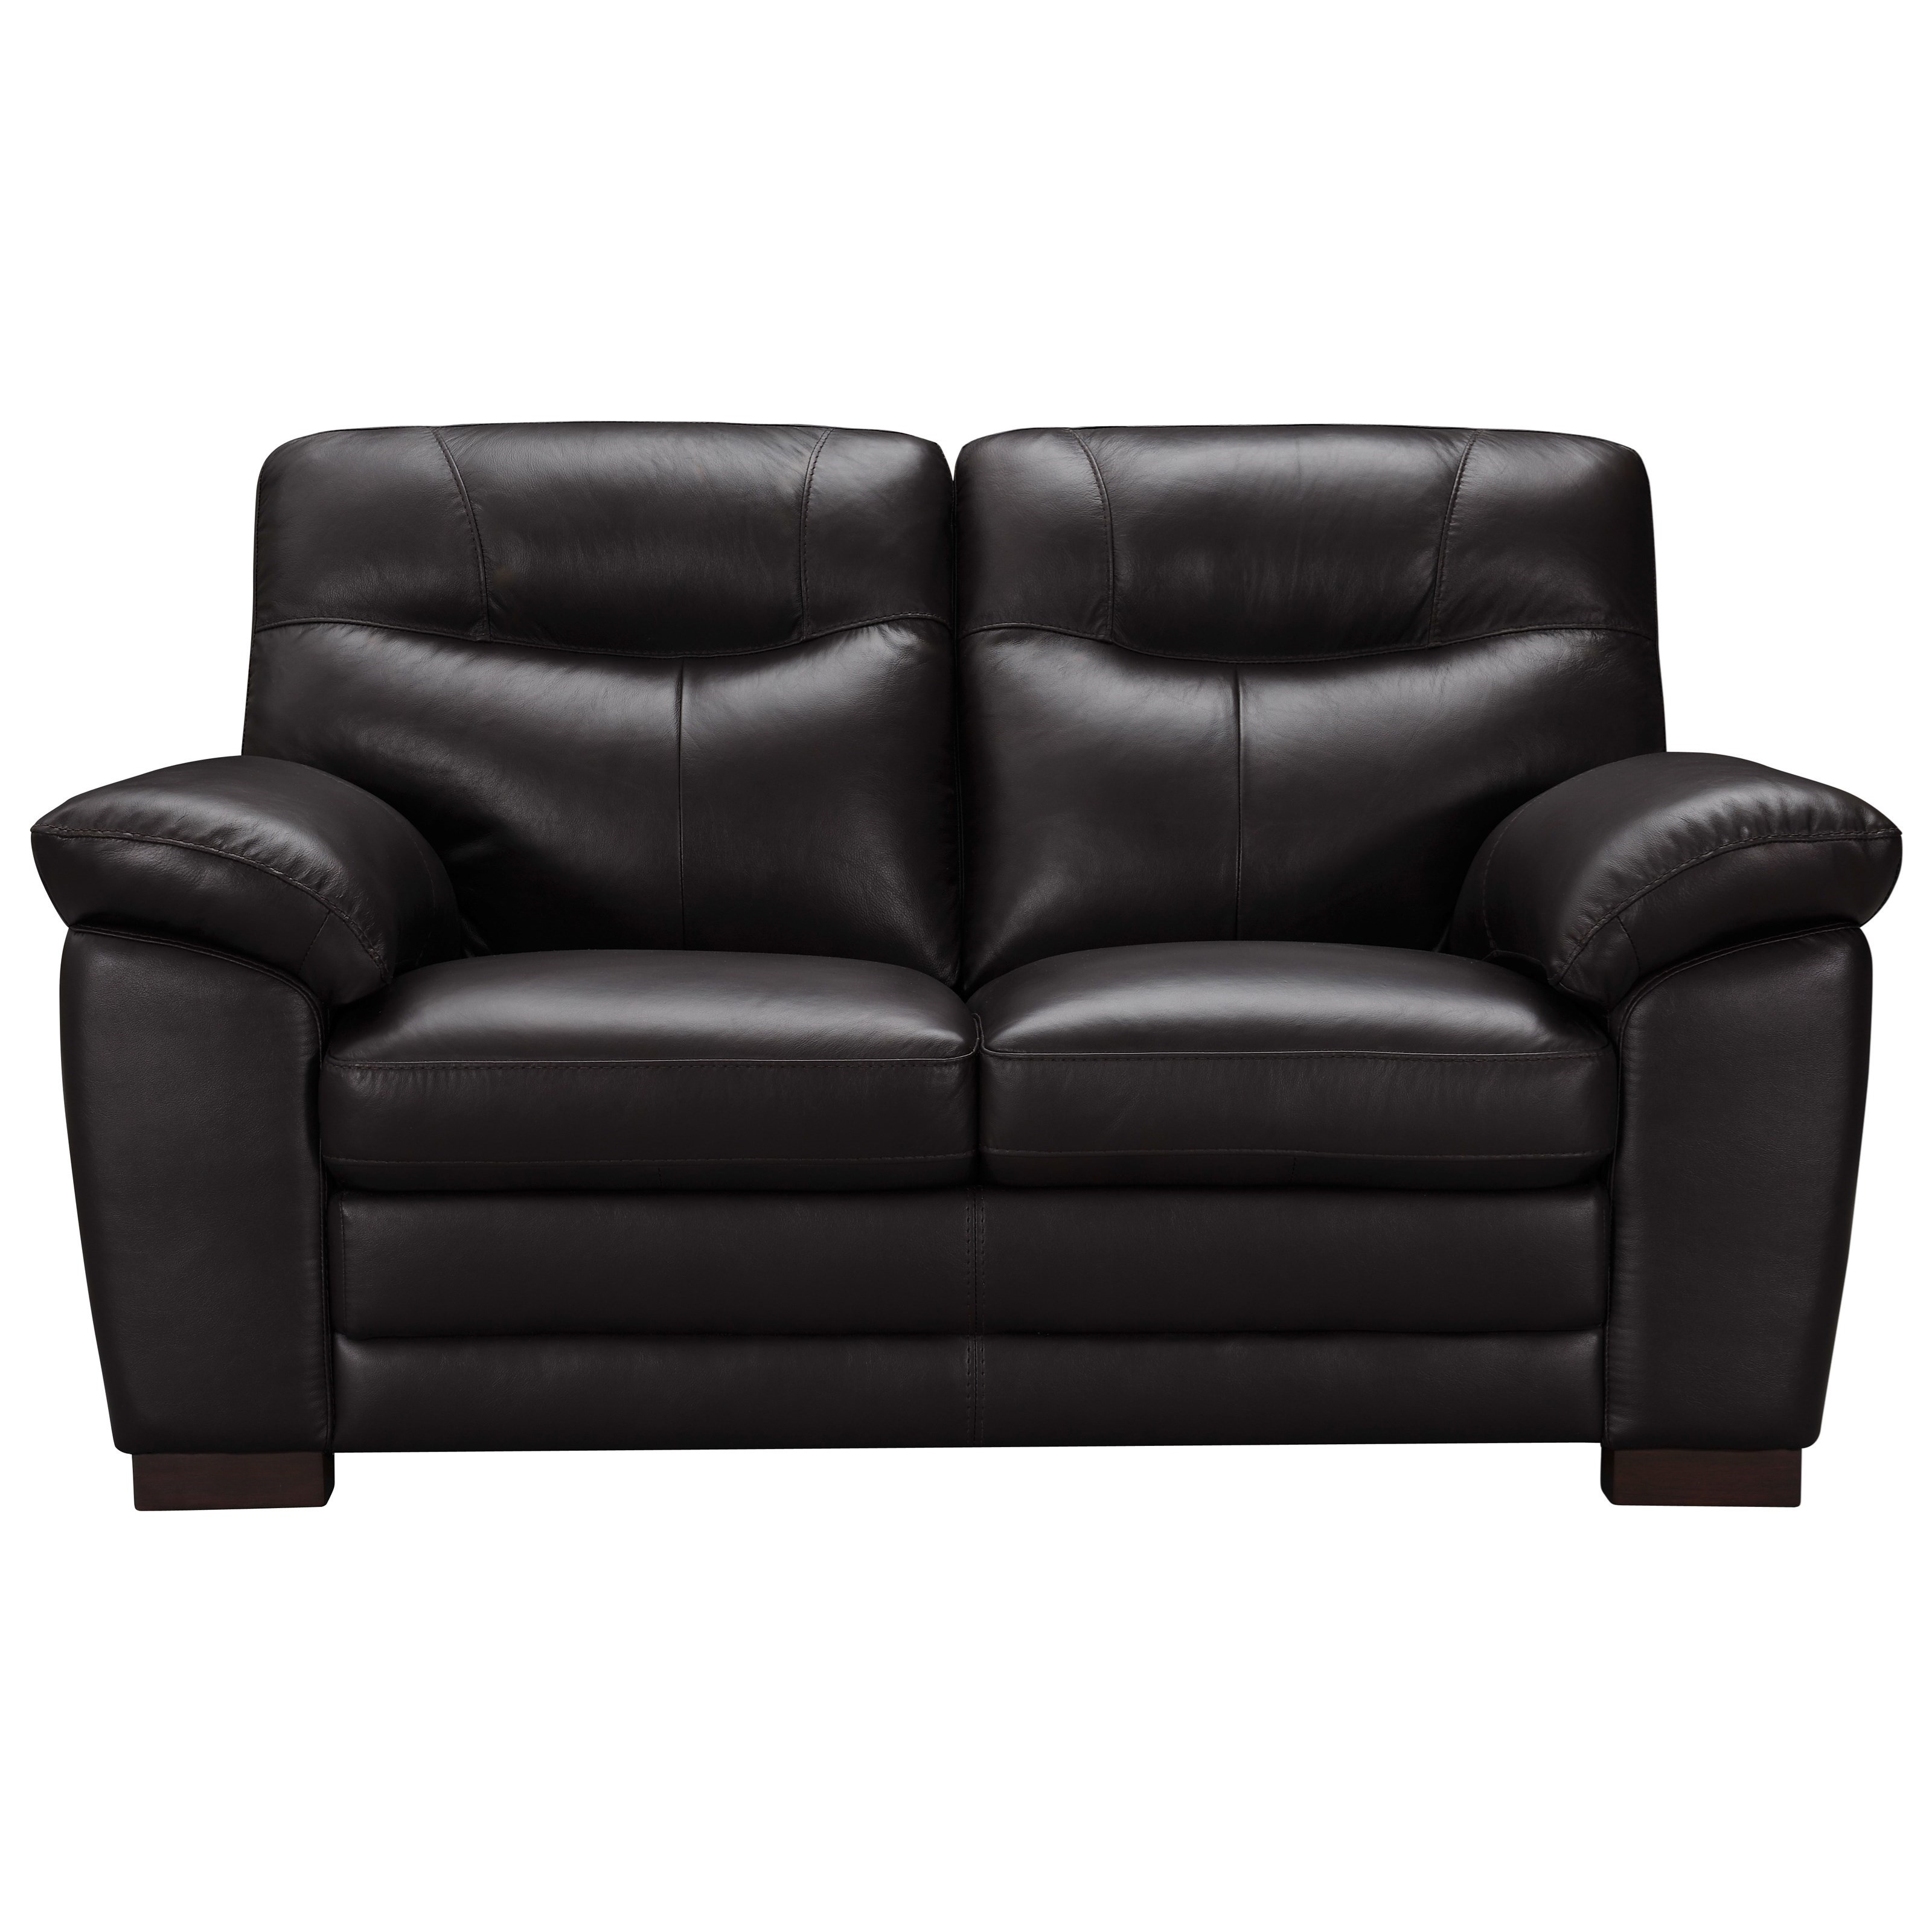 31852 Loveseat by Violino at Furniture Superstore - Rochester, MN